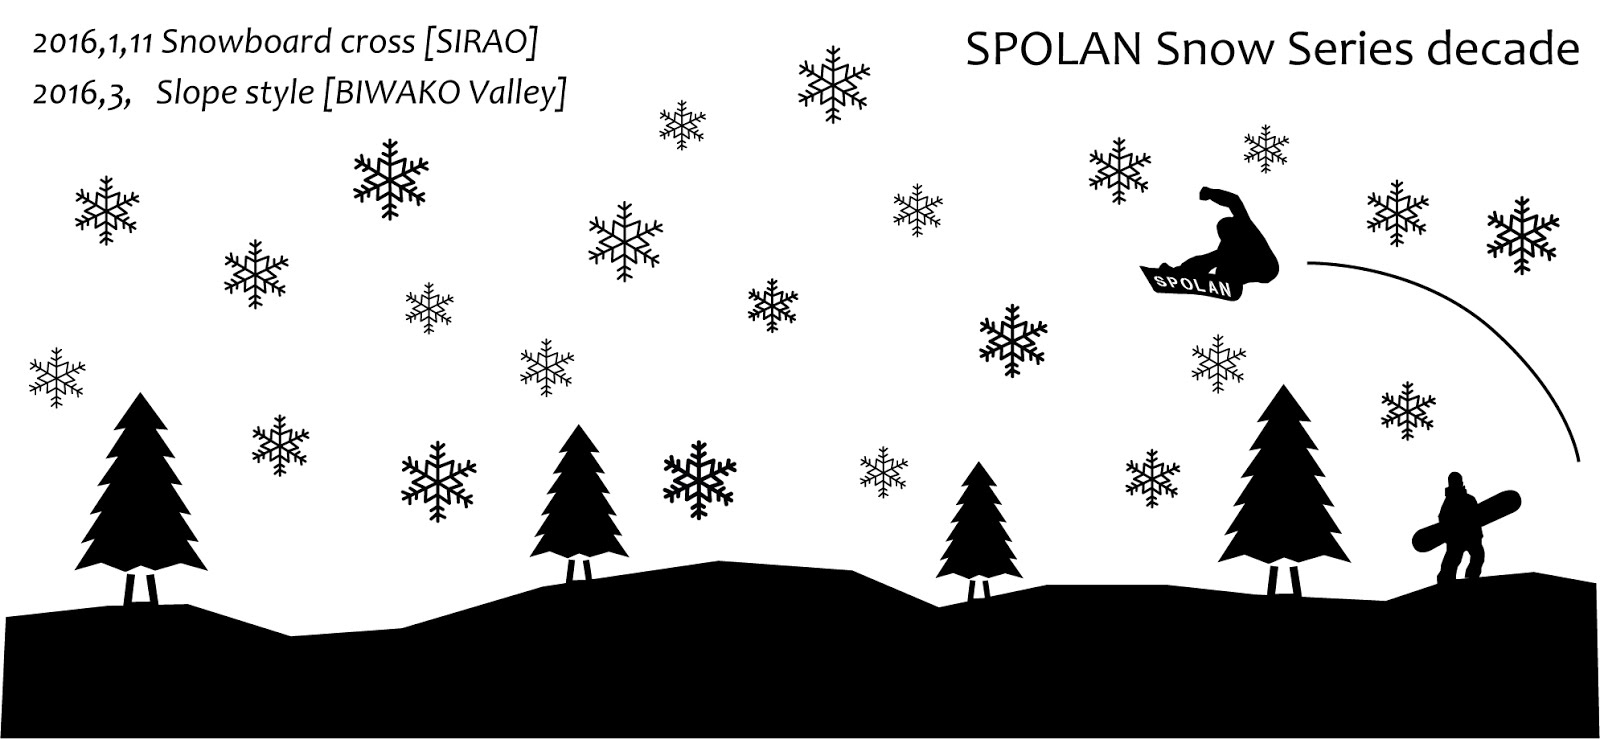 SPOLAN Snow Series